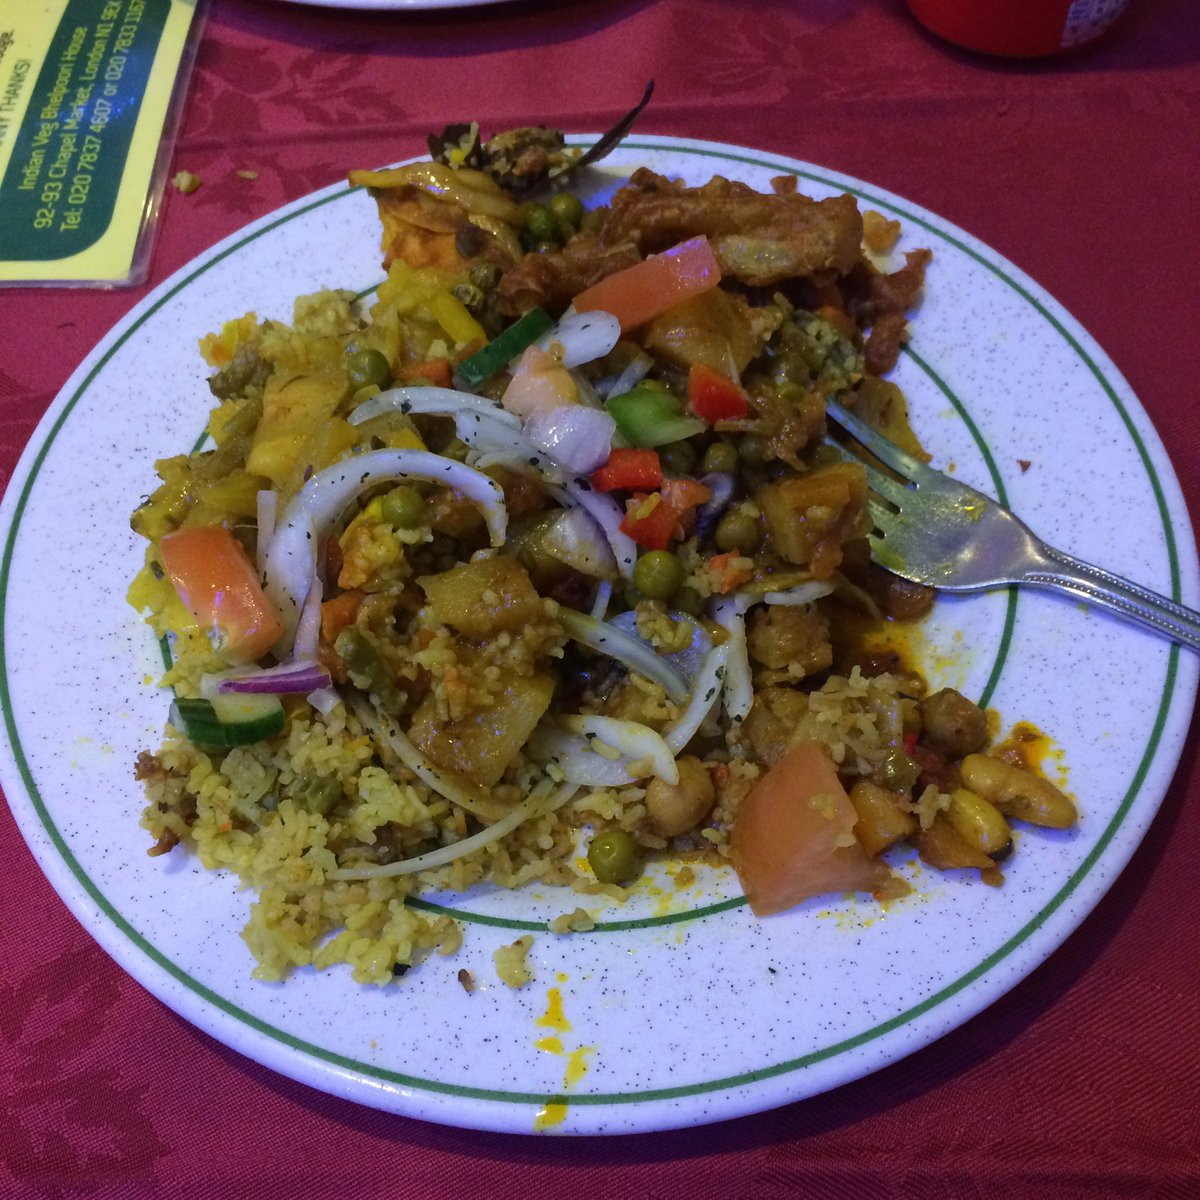 VEGANG On Twitter Big Up Indianveg Chapel Market For The Bad Boy All You Can Eat Buffet